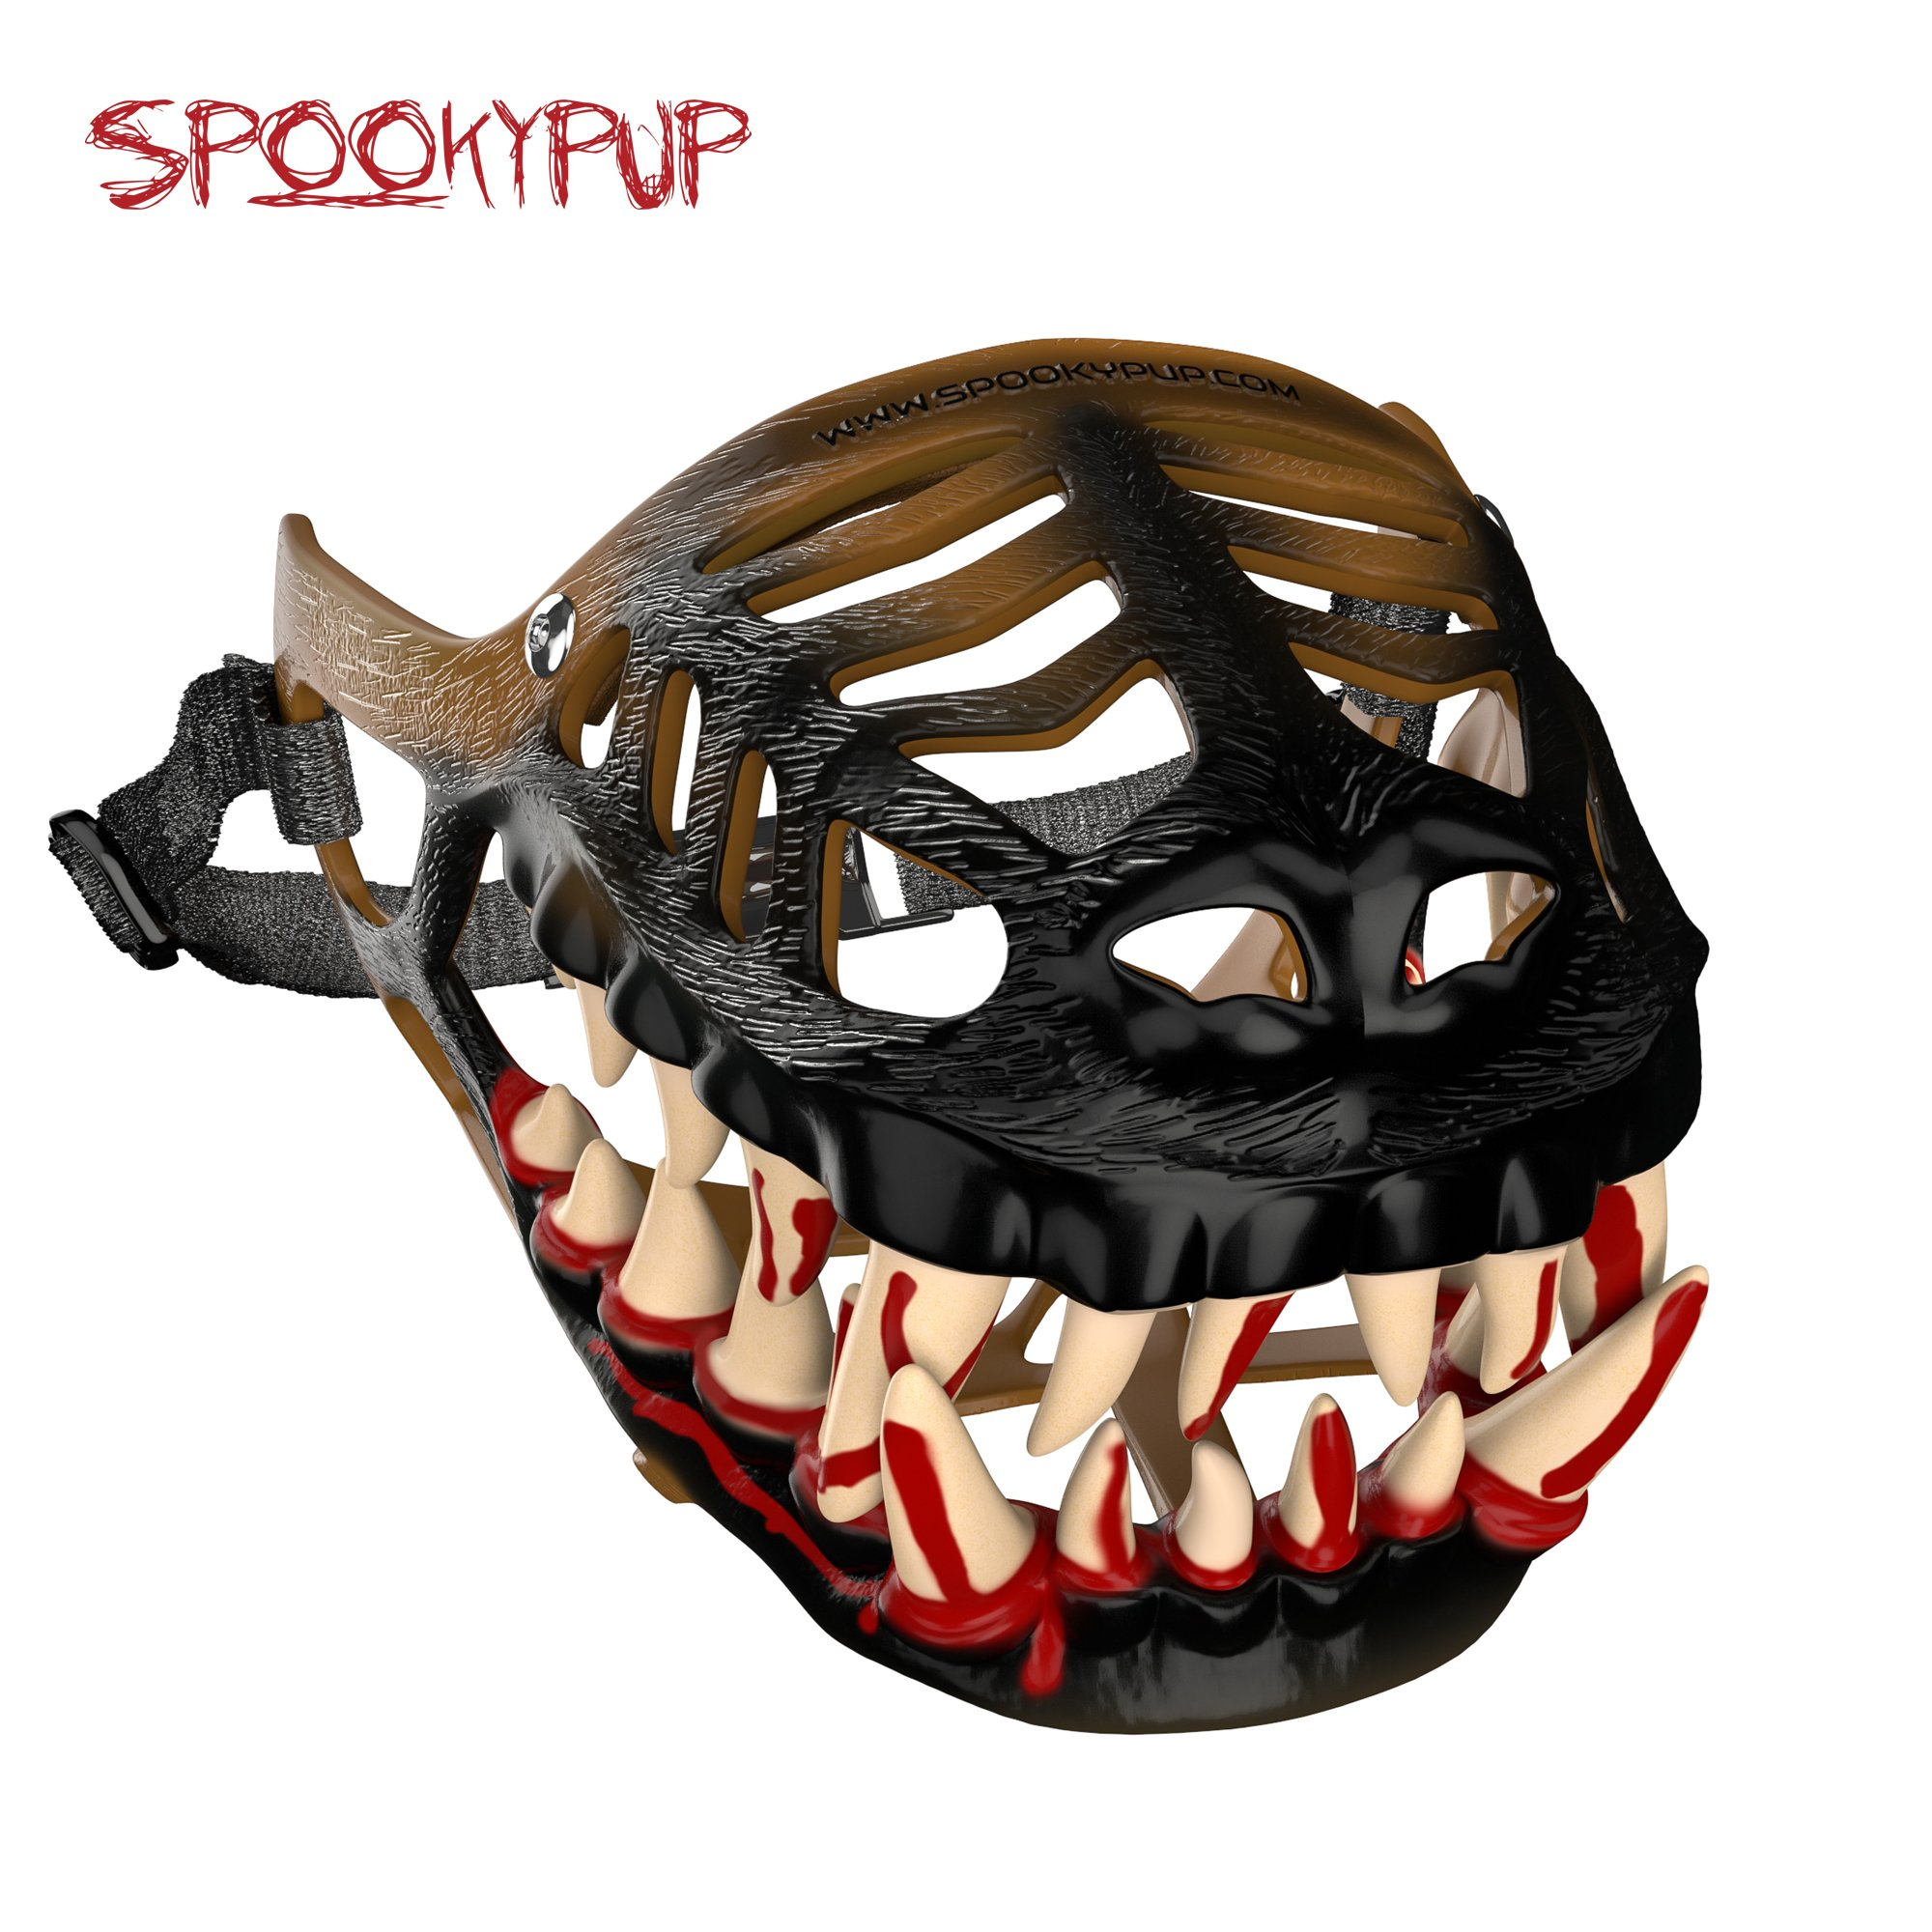 SpookyPup Hilarious Dog Costume Muzzle with Large Scary Teeth – Get Your Dog to Join the Fun (Large)